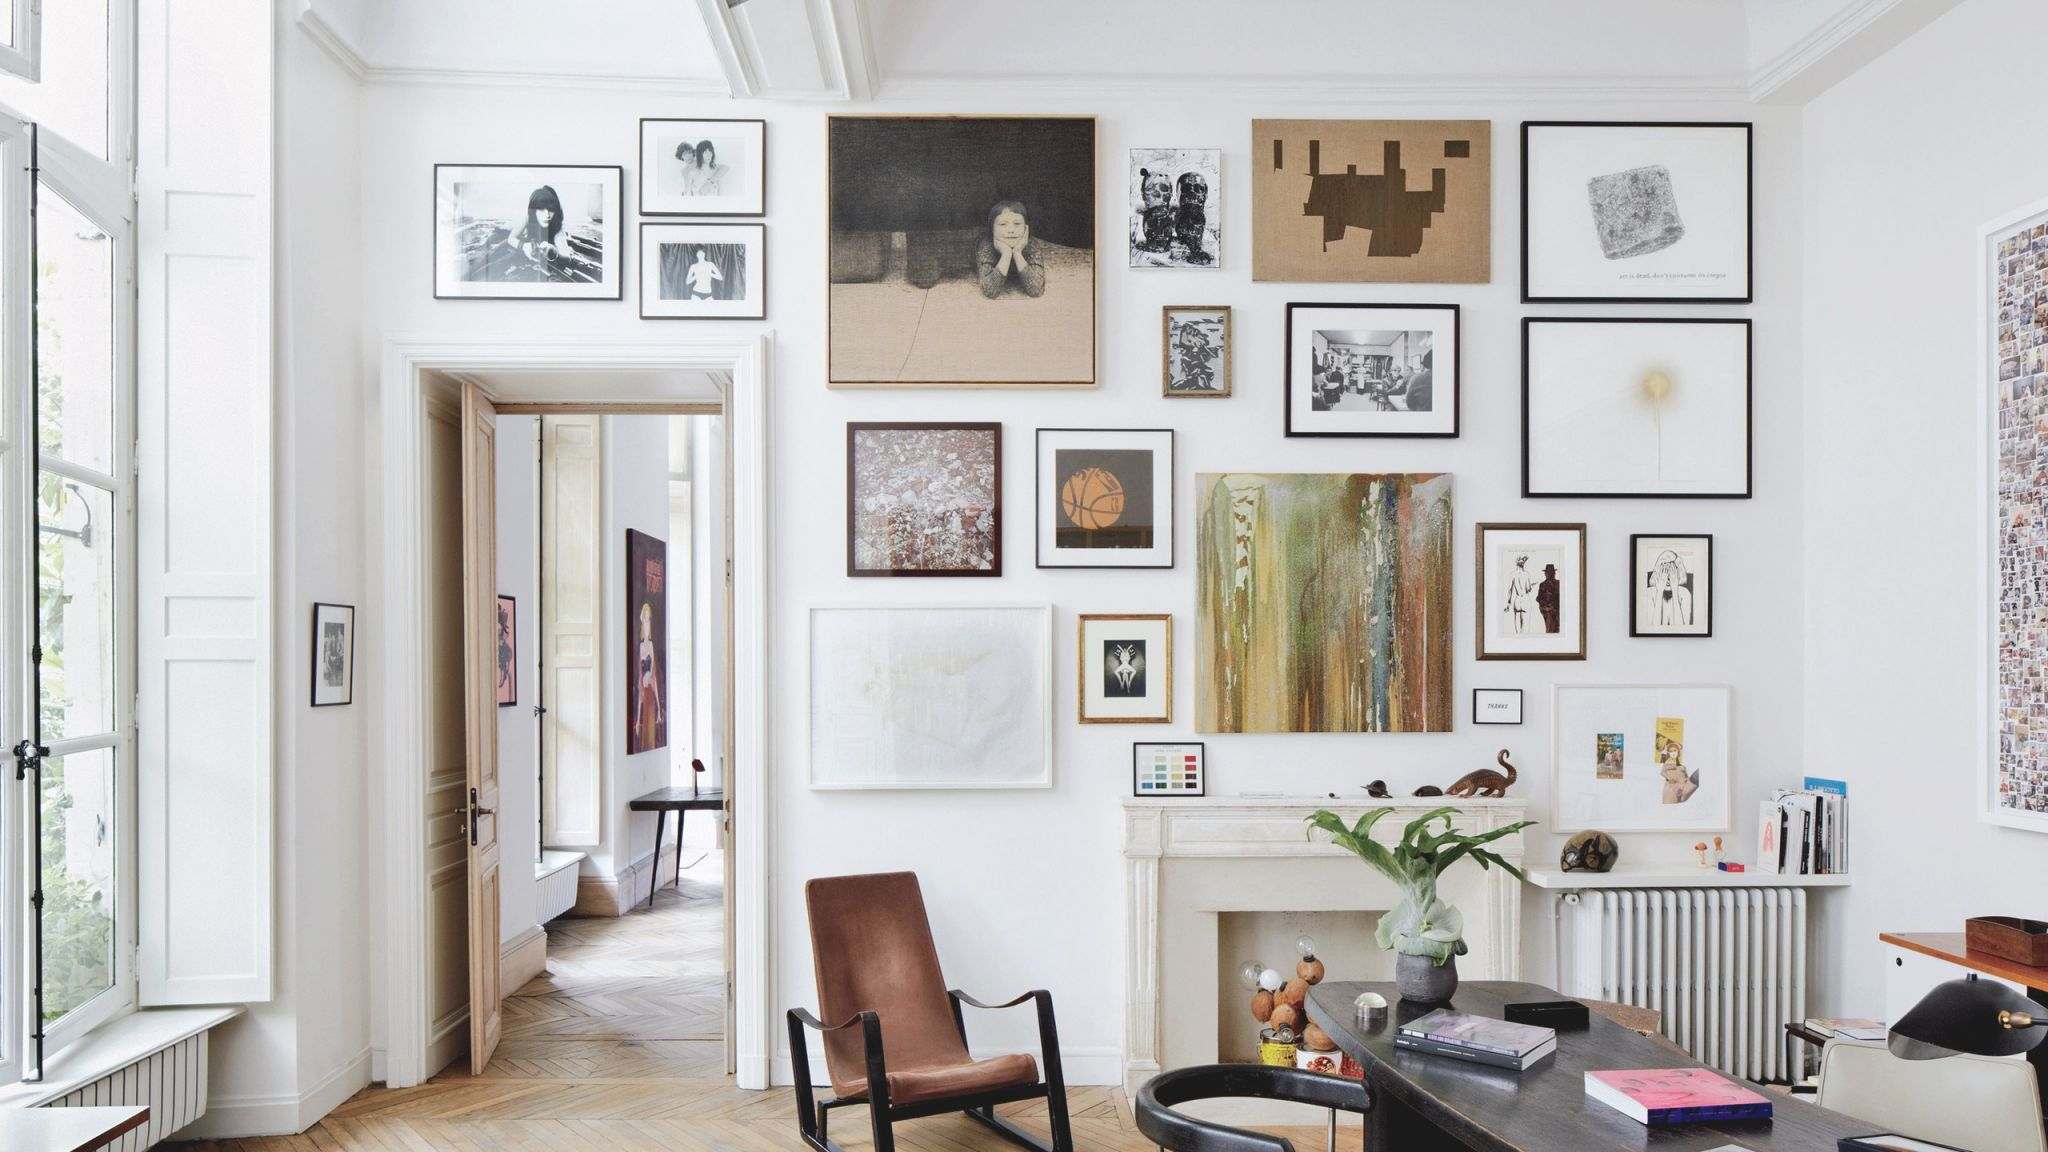 20 Wall Decor Ideas To Refresh Your Space | Architectural Digest inside Luxury Wall Decor For Living Room Ideas